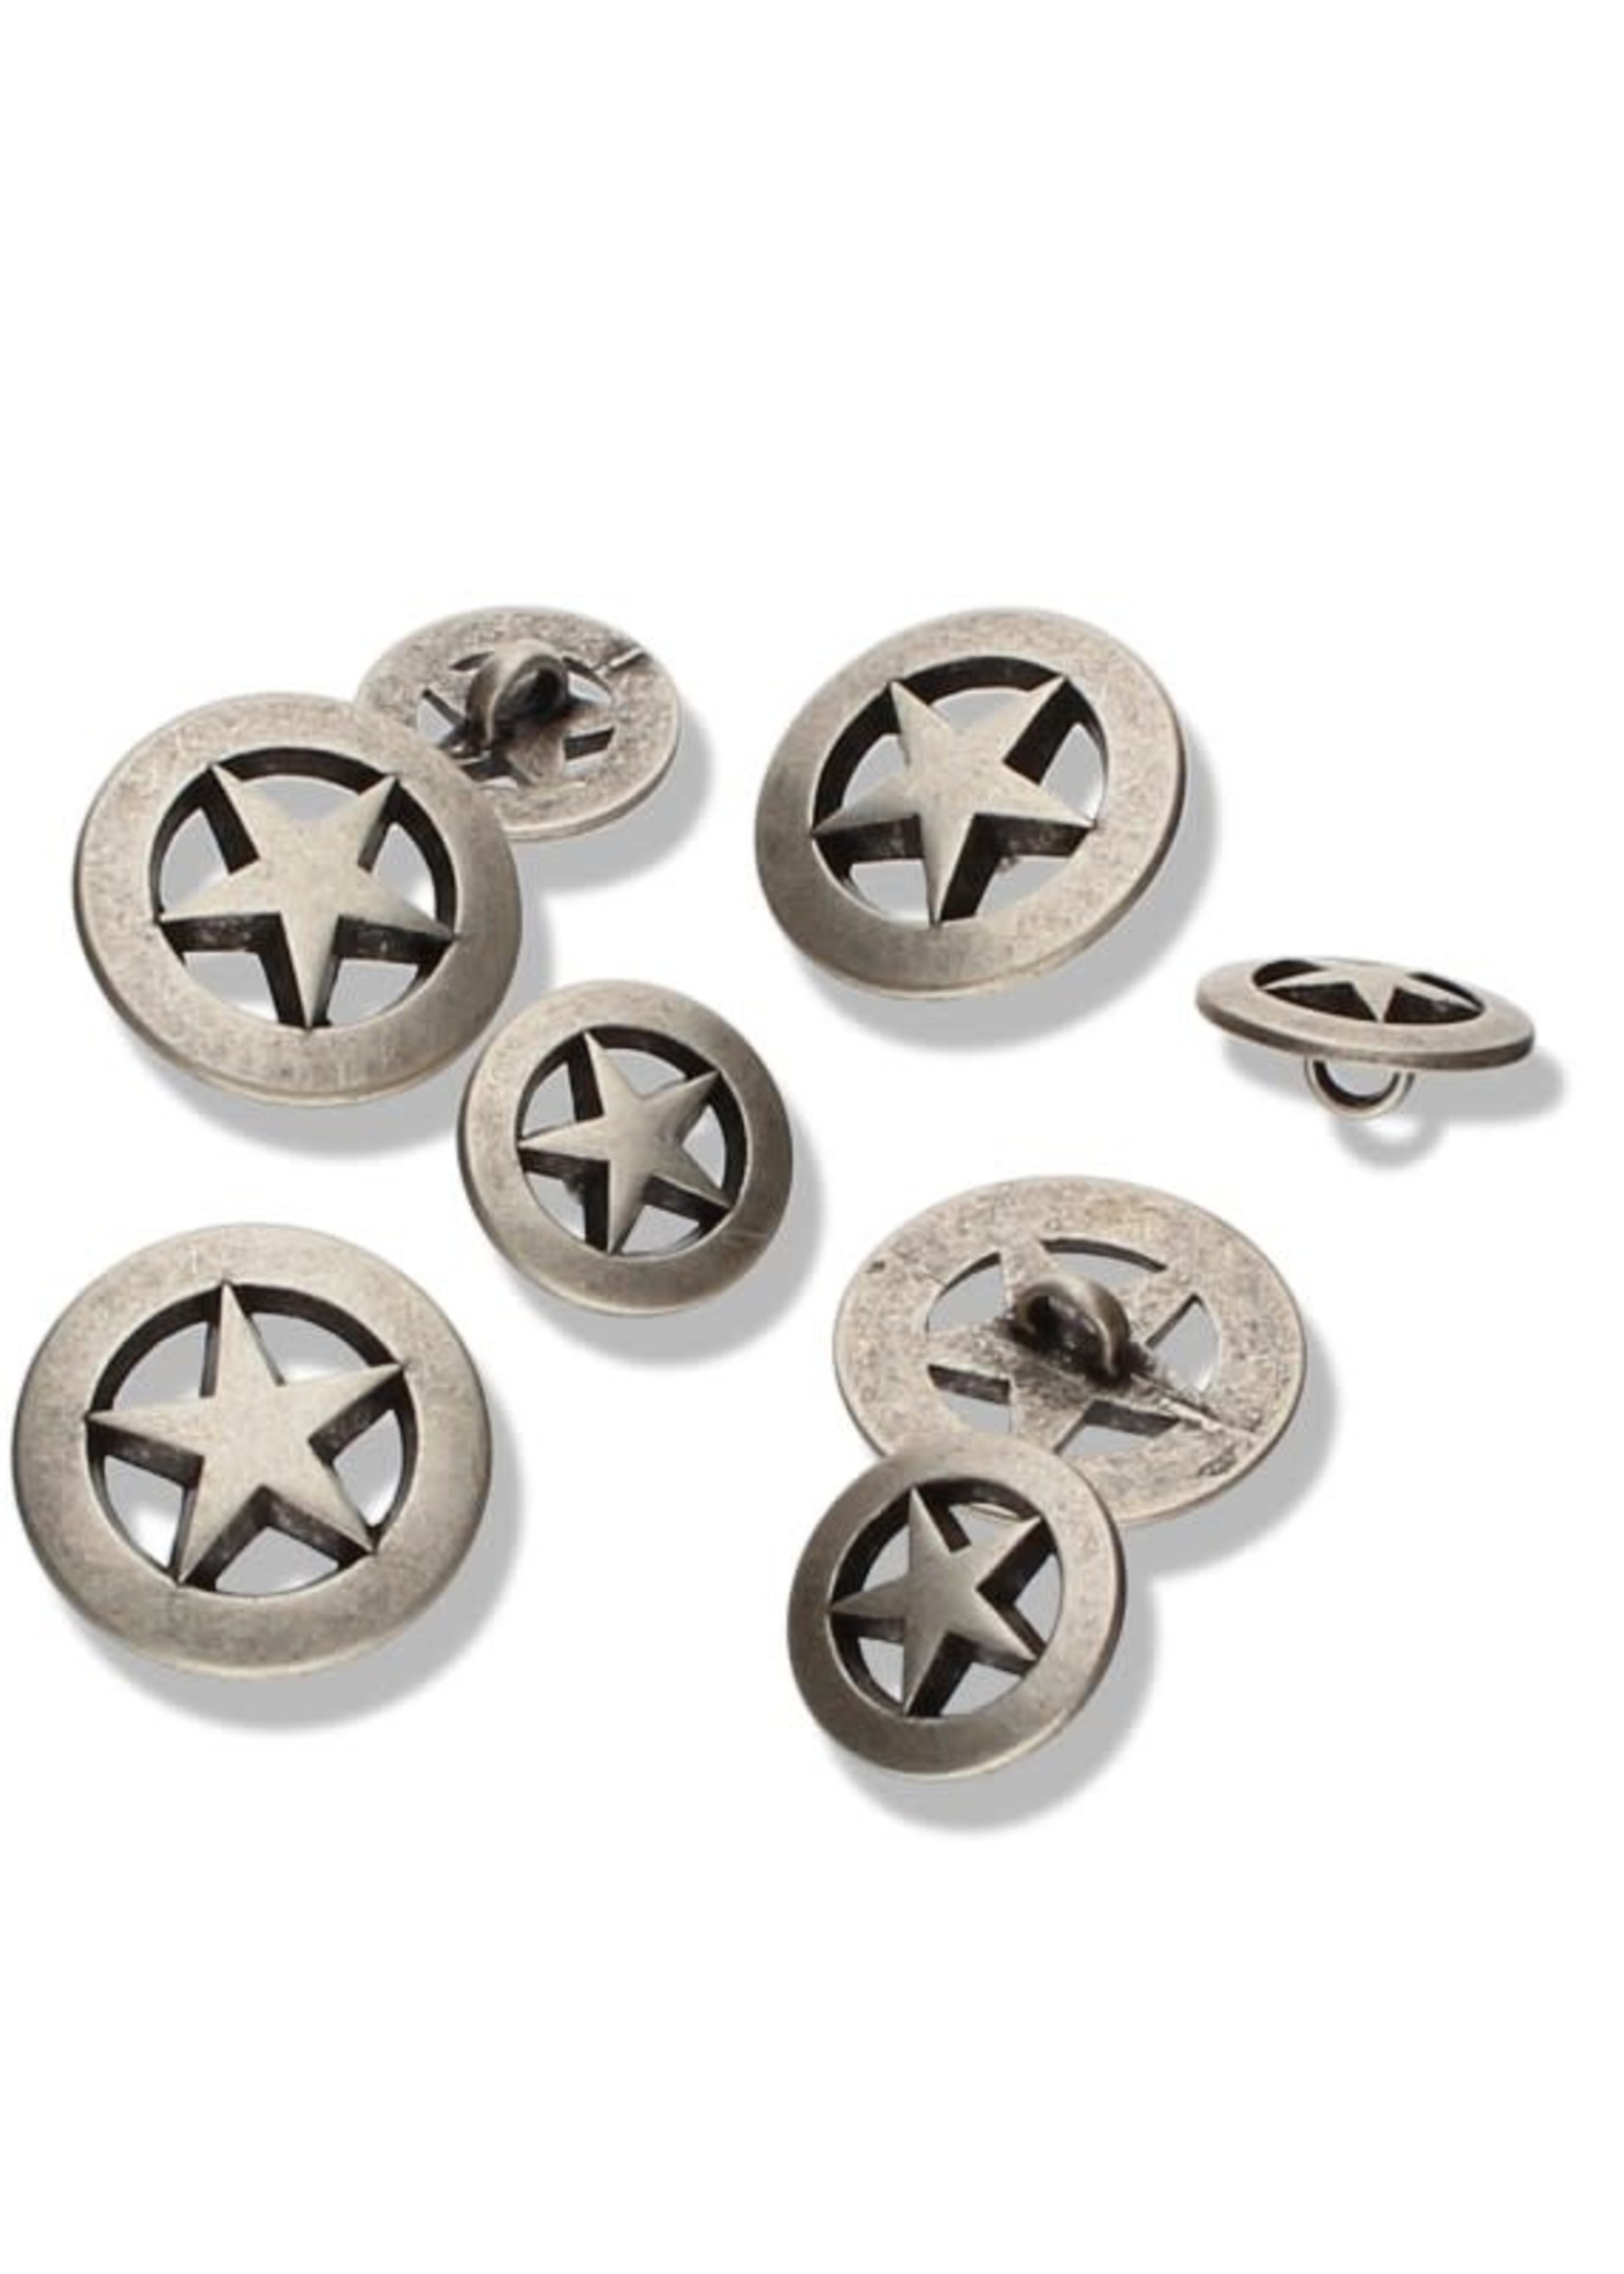 Seco Knopf Captain America Stars Buttons 15 mm